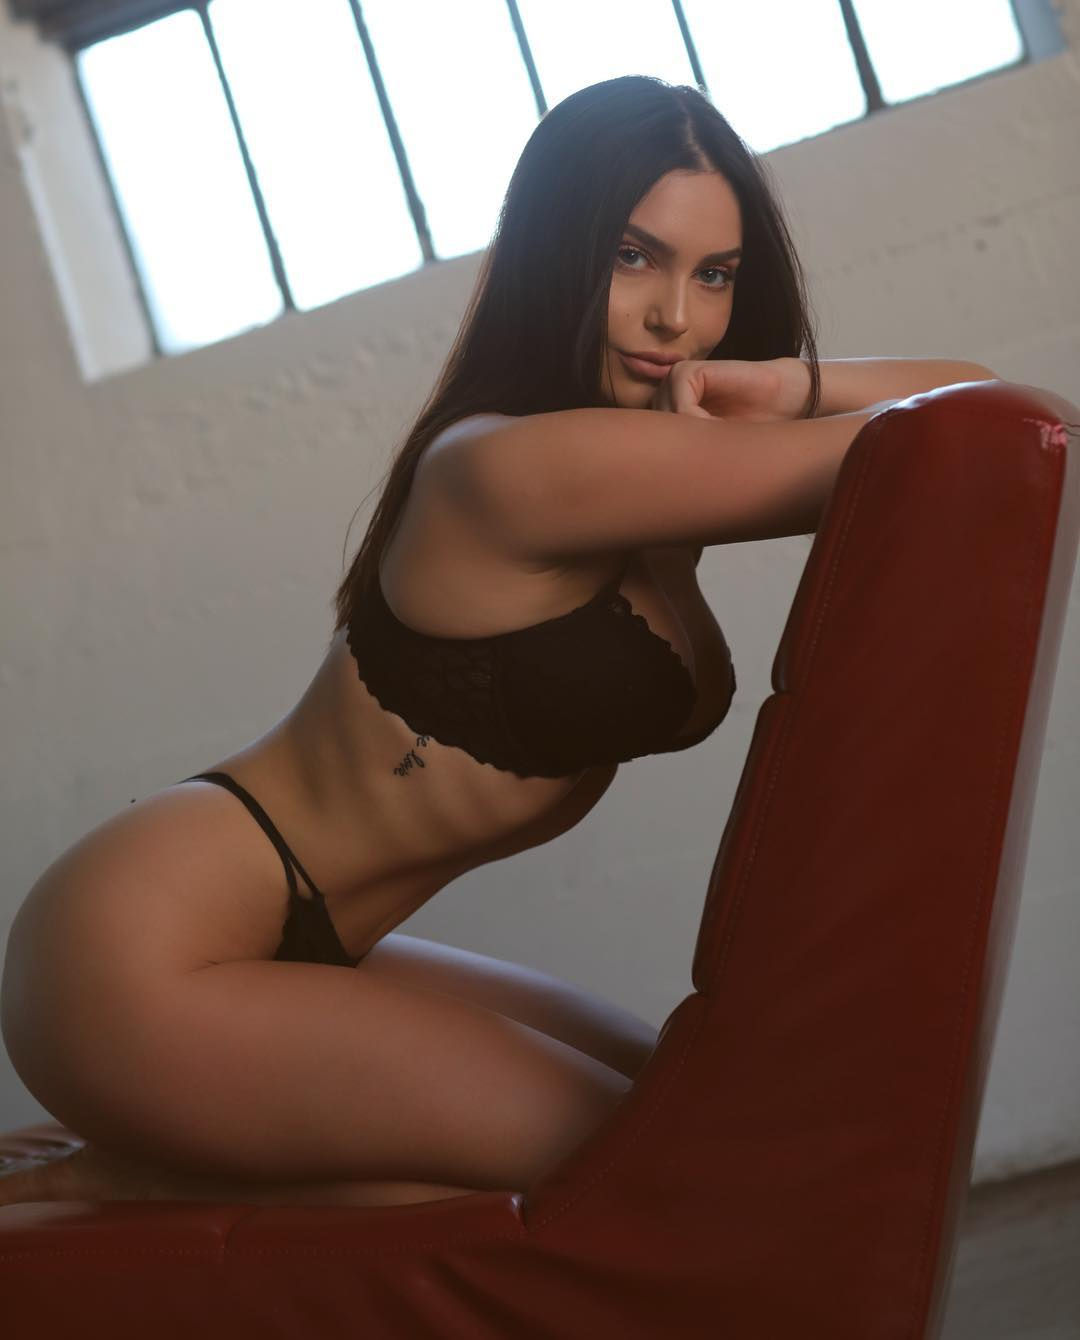 Emily Cybak is a model that appeared in Tyga Floss In The Bank